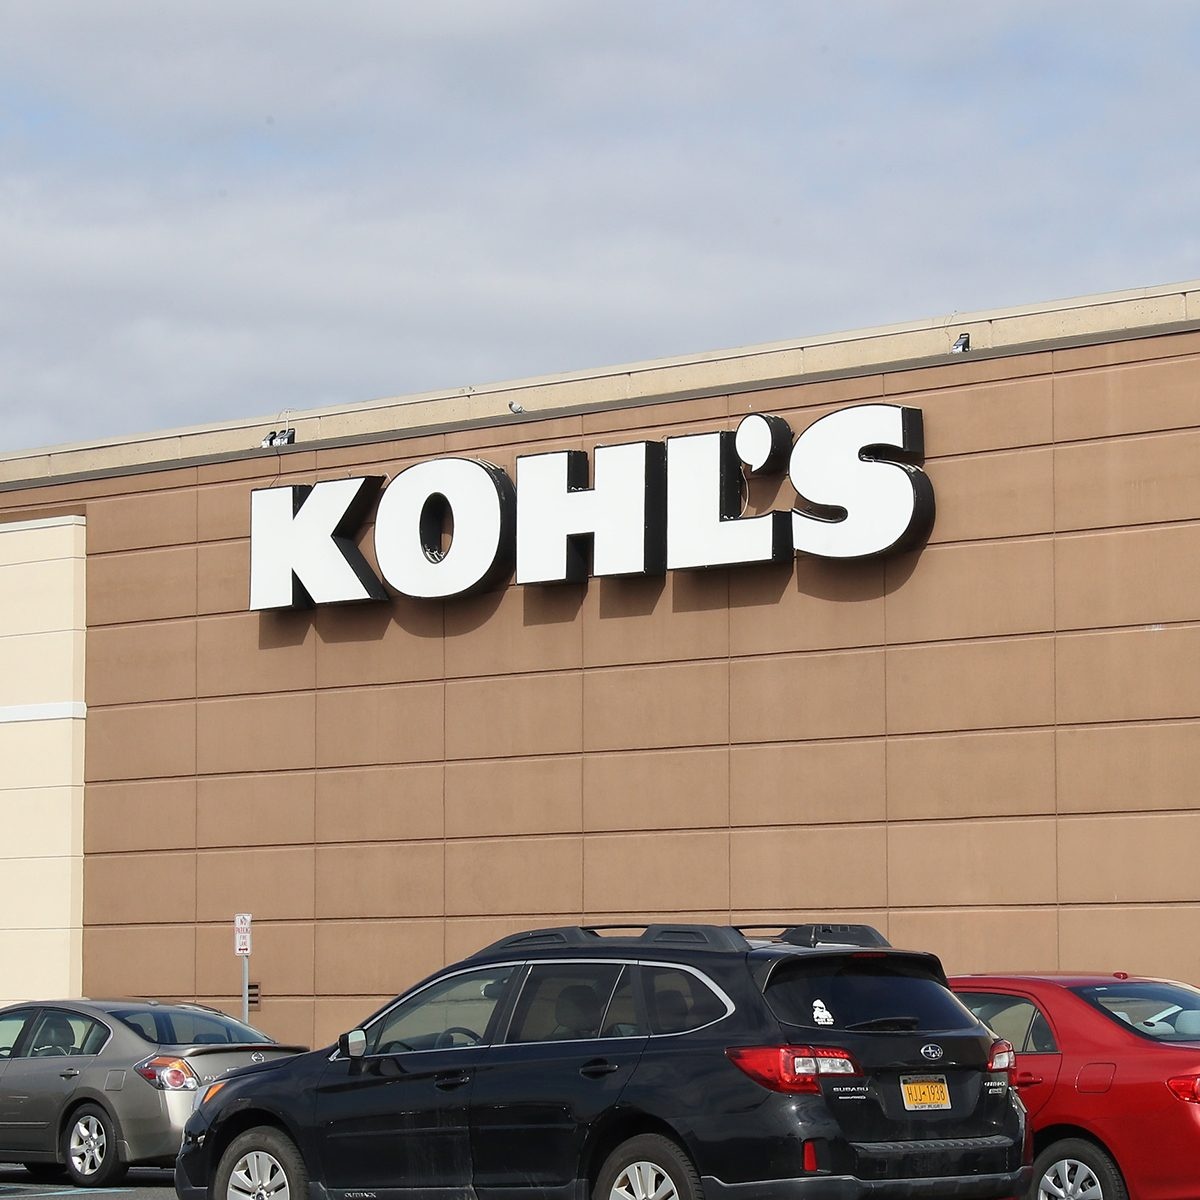 LEVITTOWN, NEW YORK - MARCH 16: An image of the sign for Kohl's as photographed on March 16, 2020 in Levittown, New York. (Photo by Bruce Bennett/Getty Images)